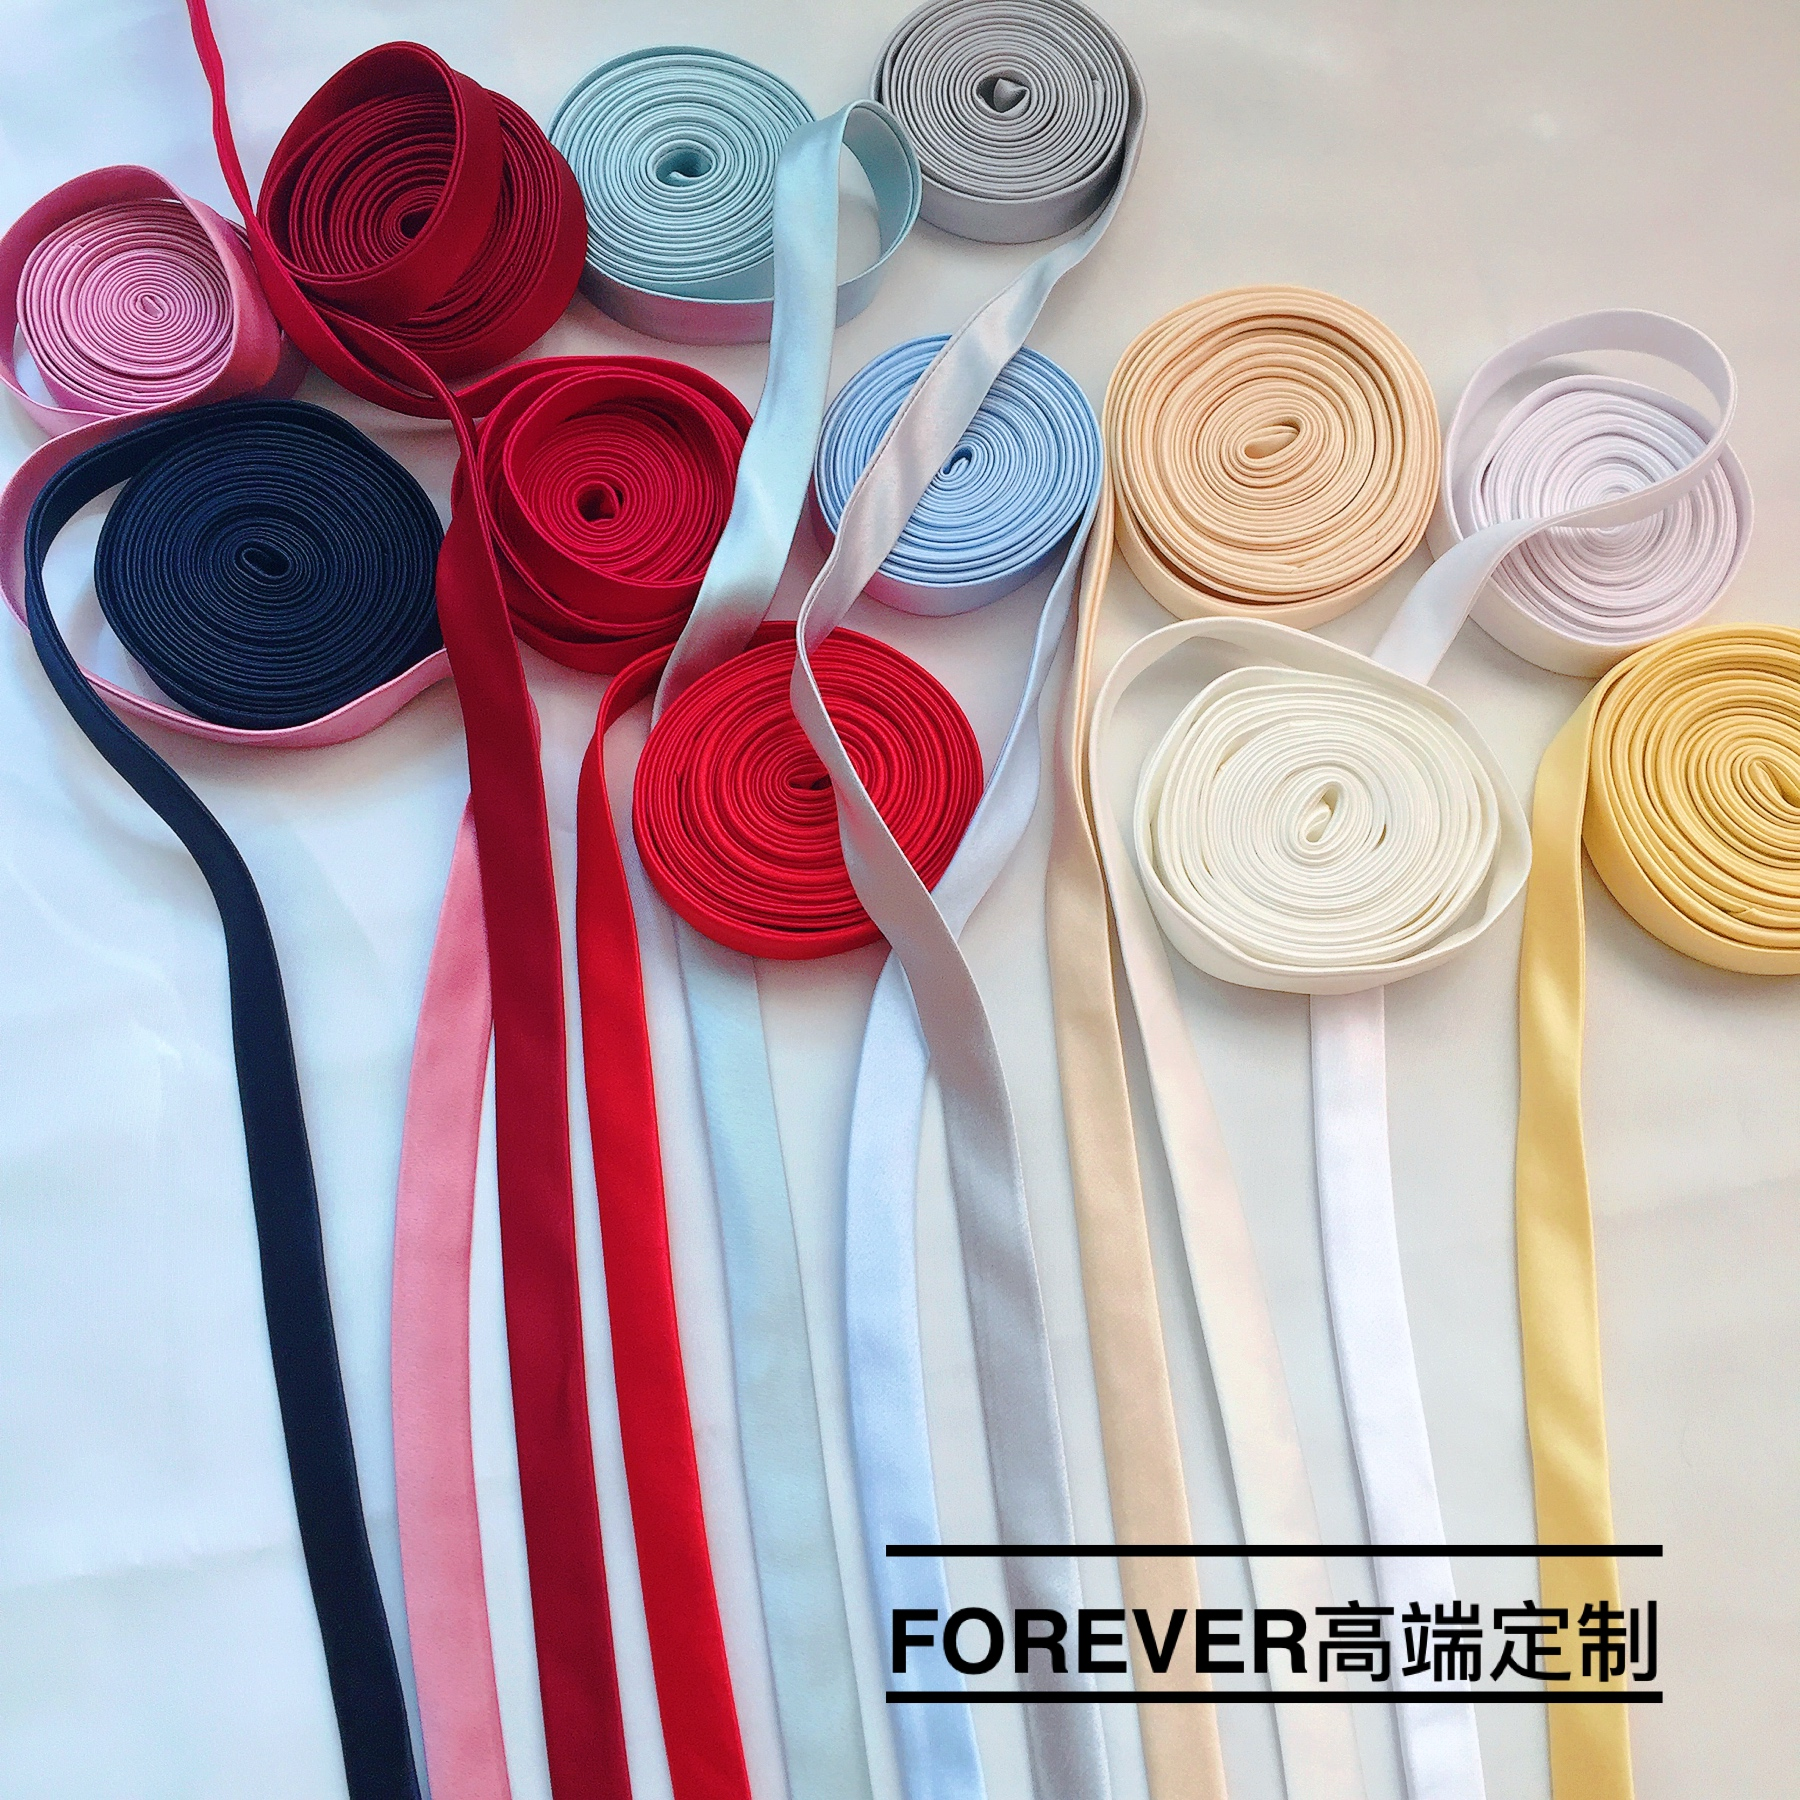 Wedding dress accessories back tie rope tie multicolor wedding dress back enlarged wide crotch cloth cover